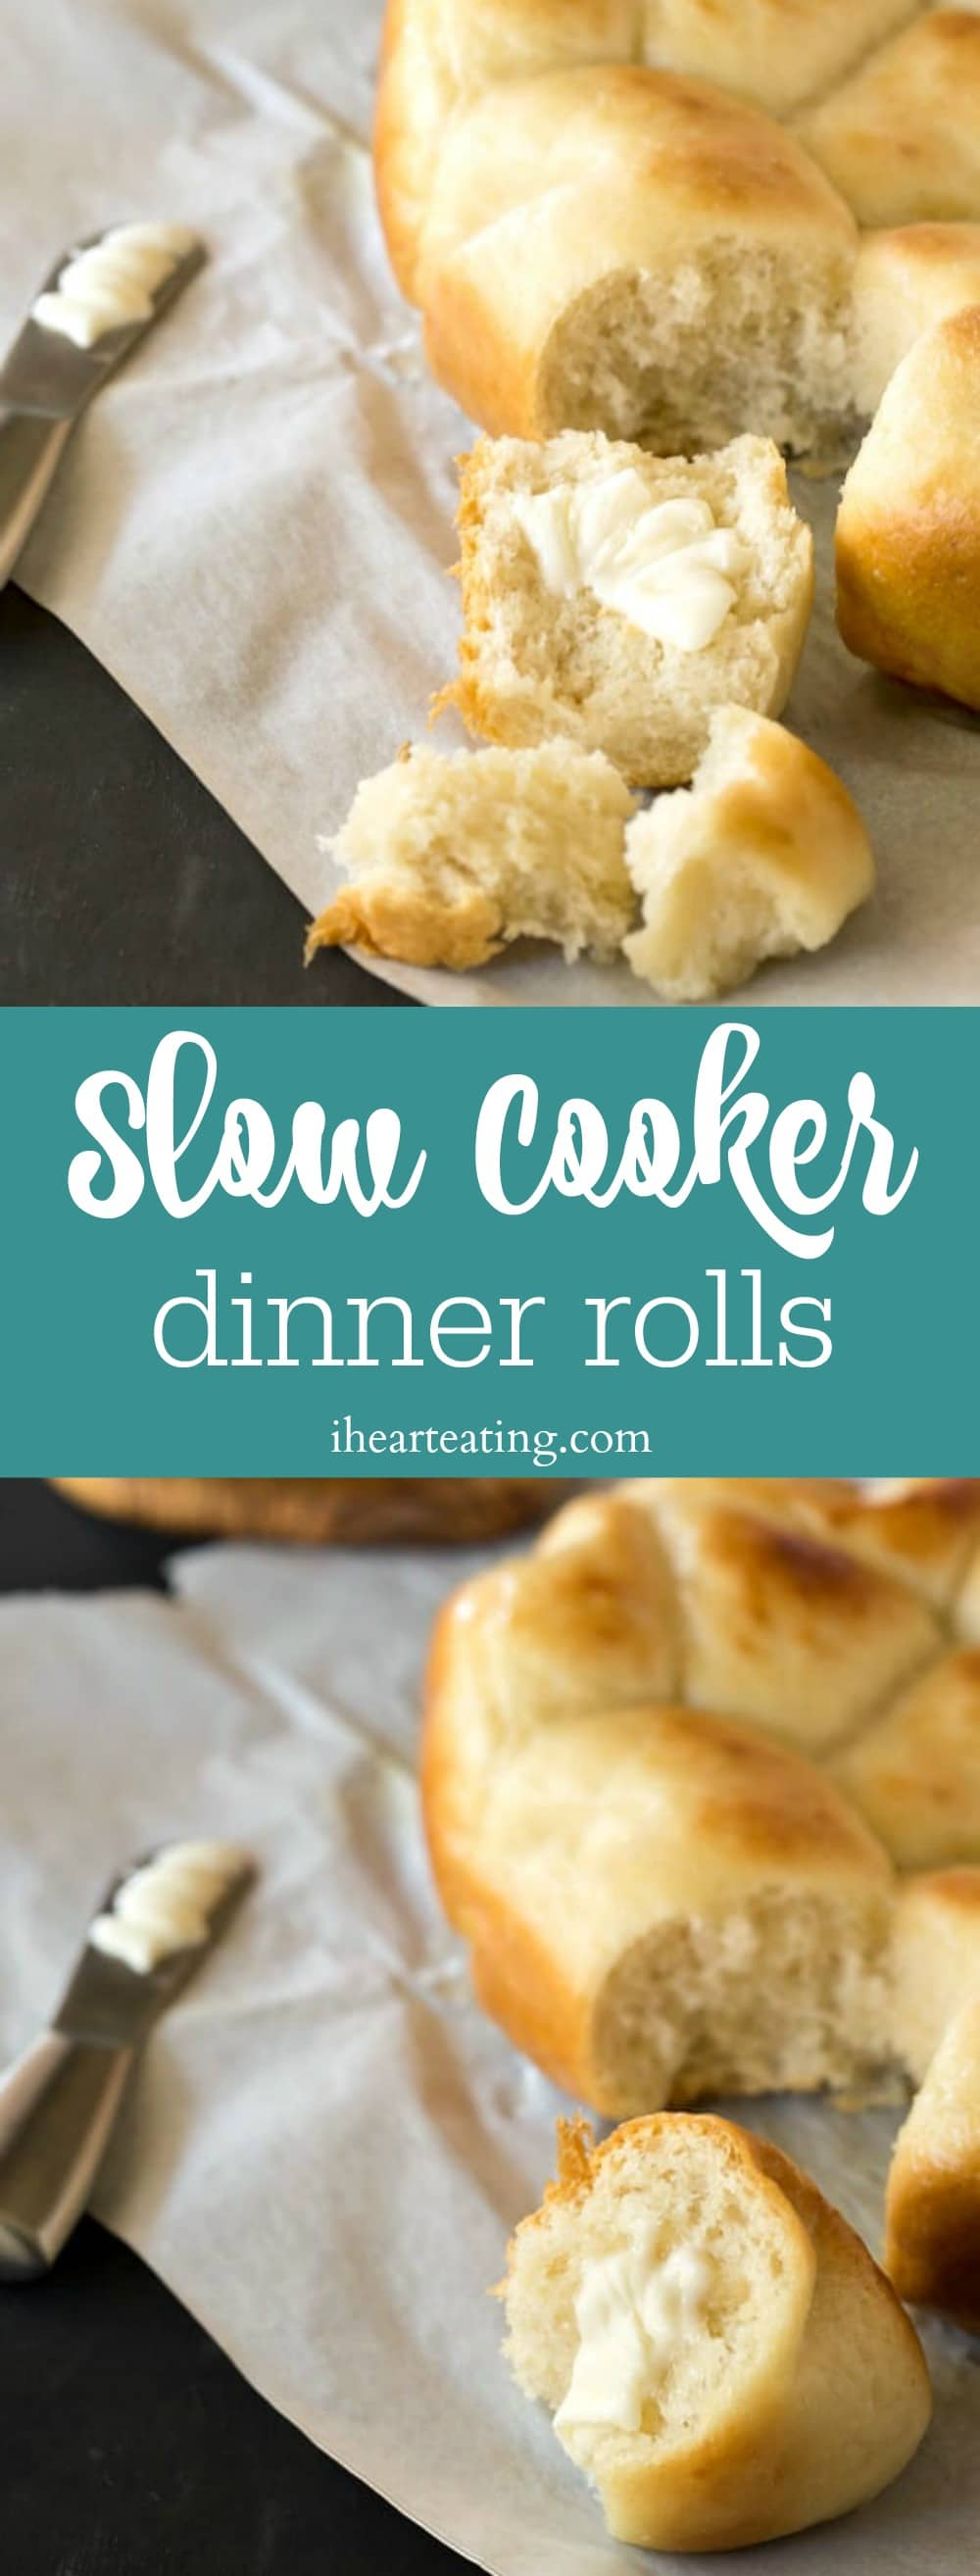 Slow cooker dinner rolls are an easy way to make fresh, homemade bread right in your crock pot! No oven necessary, which is perfect for holiday dinner!